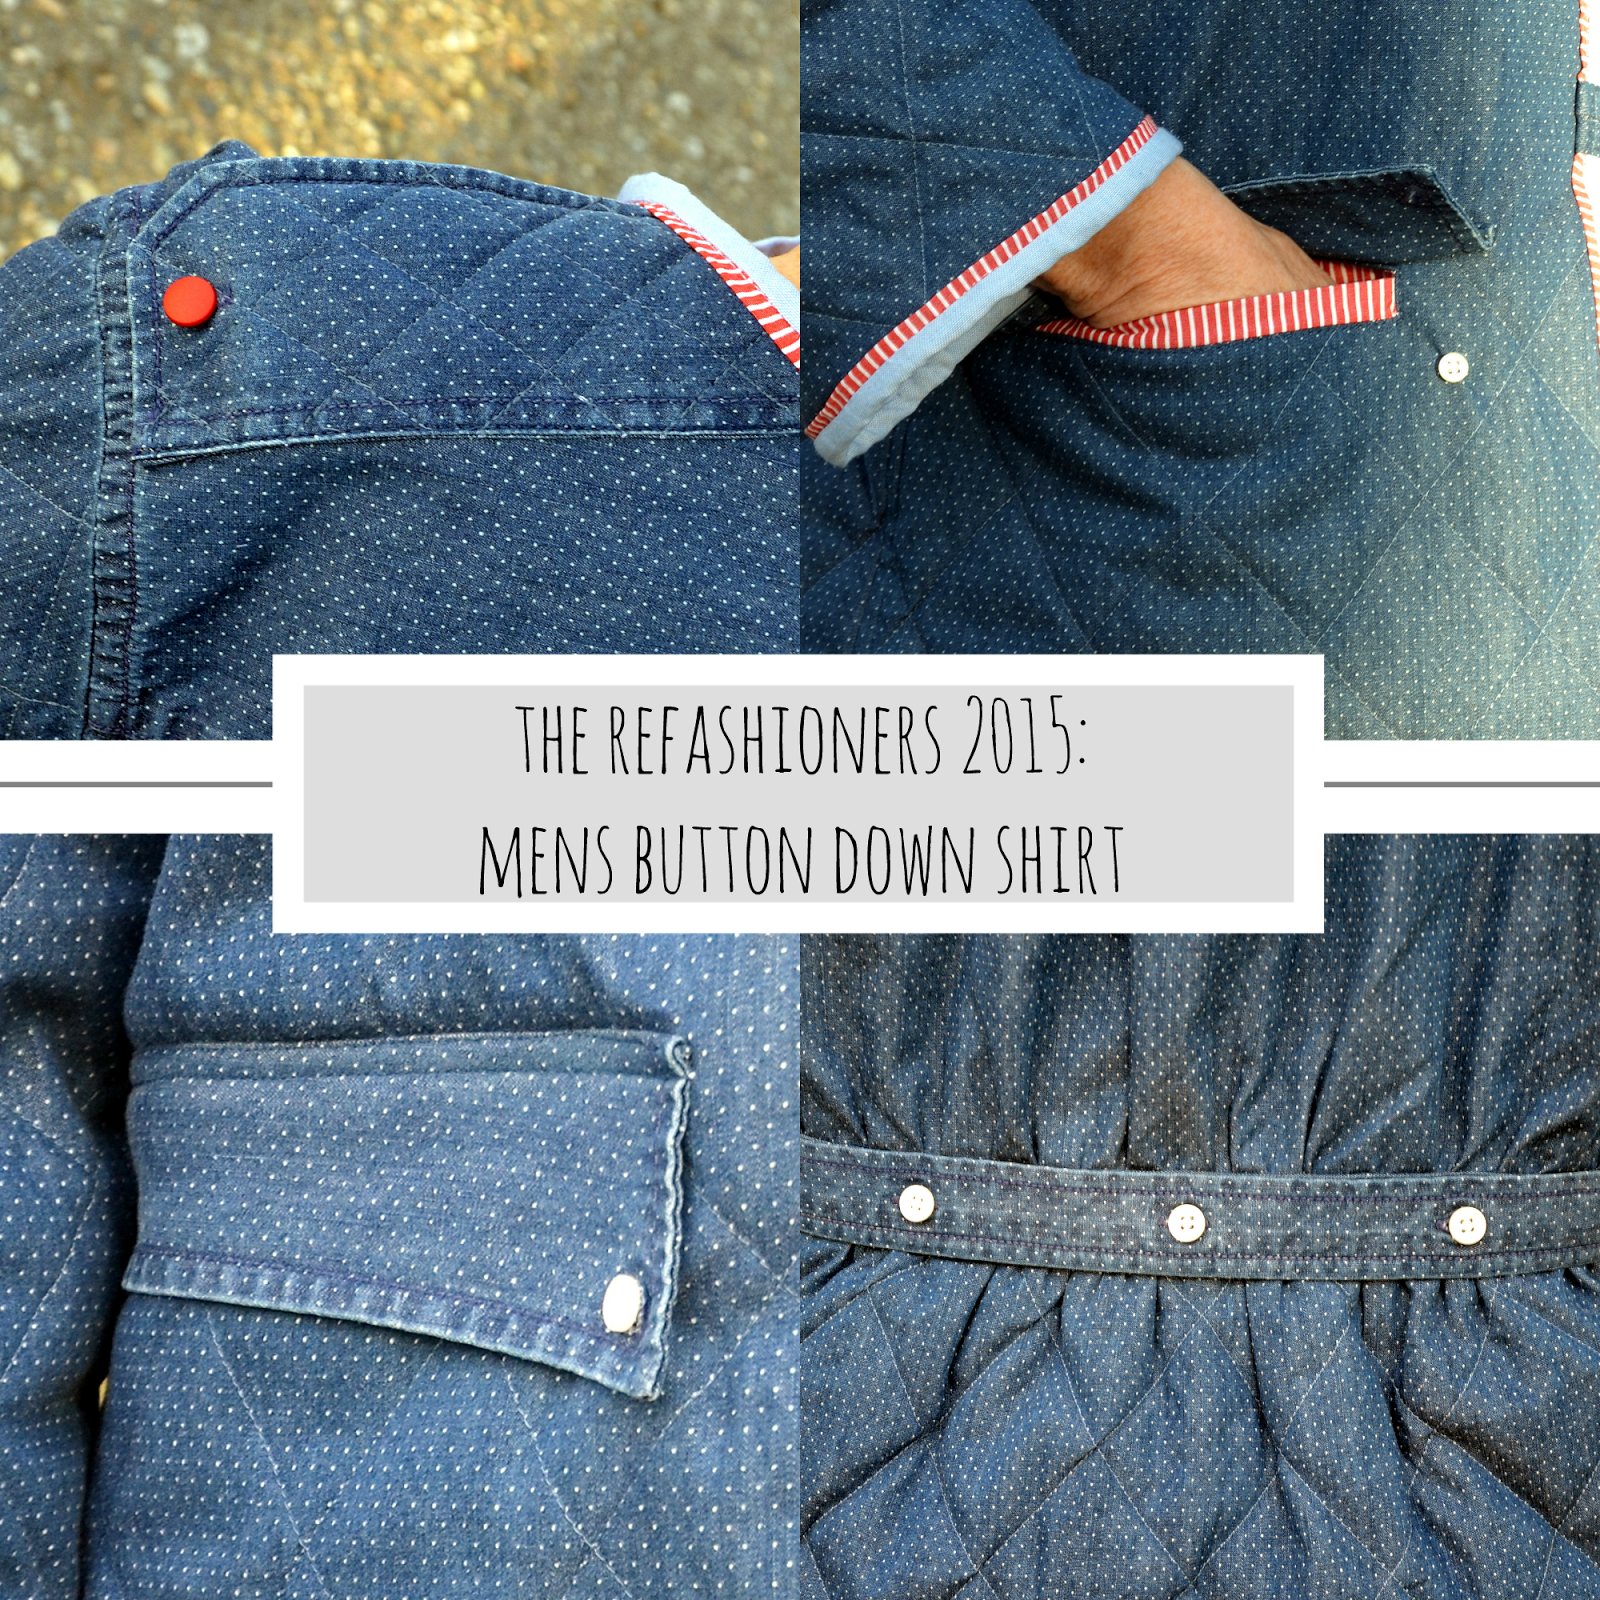 #get shirty, #therefashioners2015, A Colourful Canvas